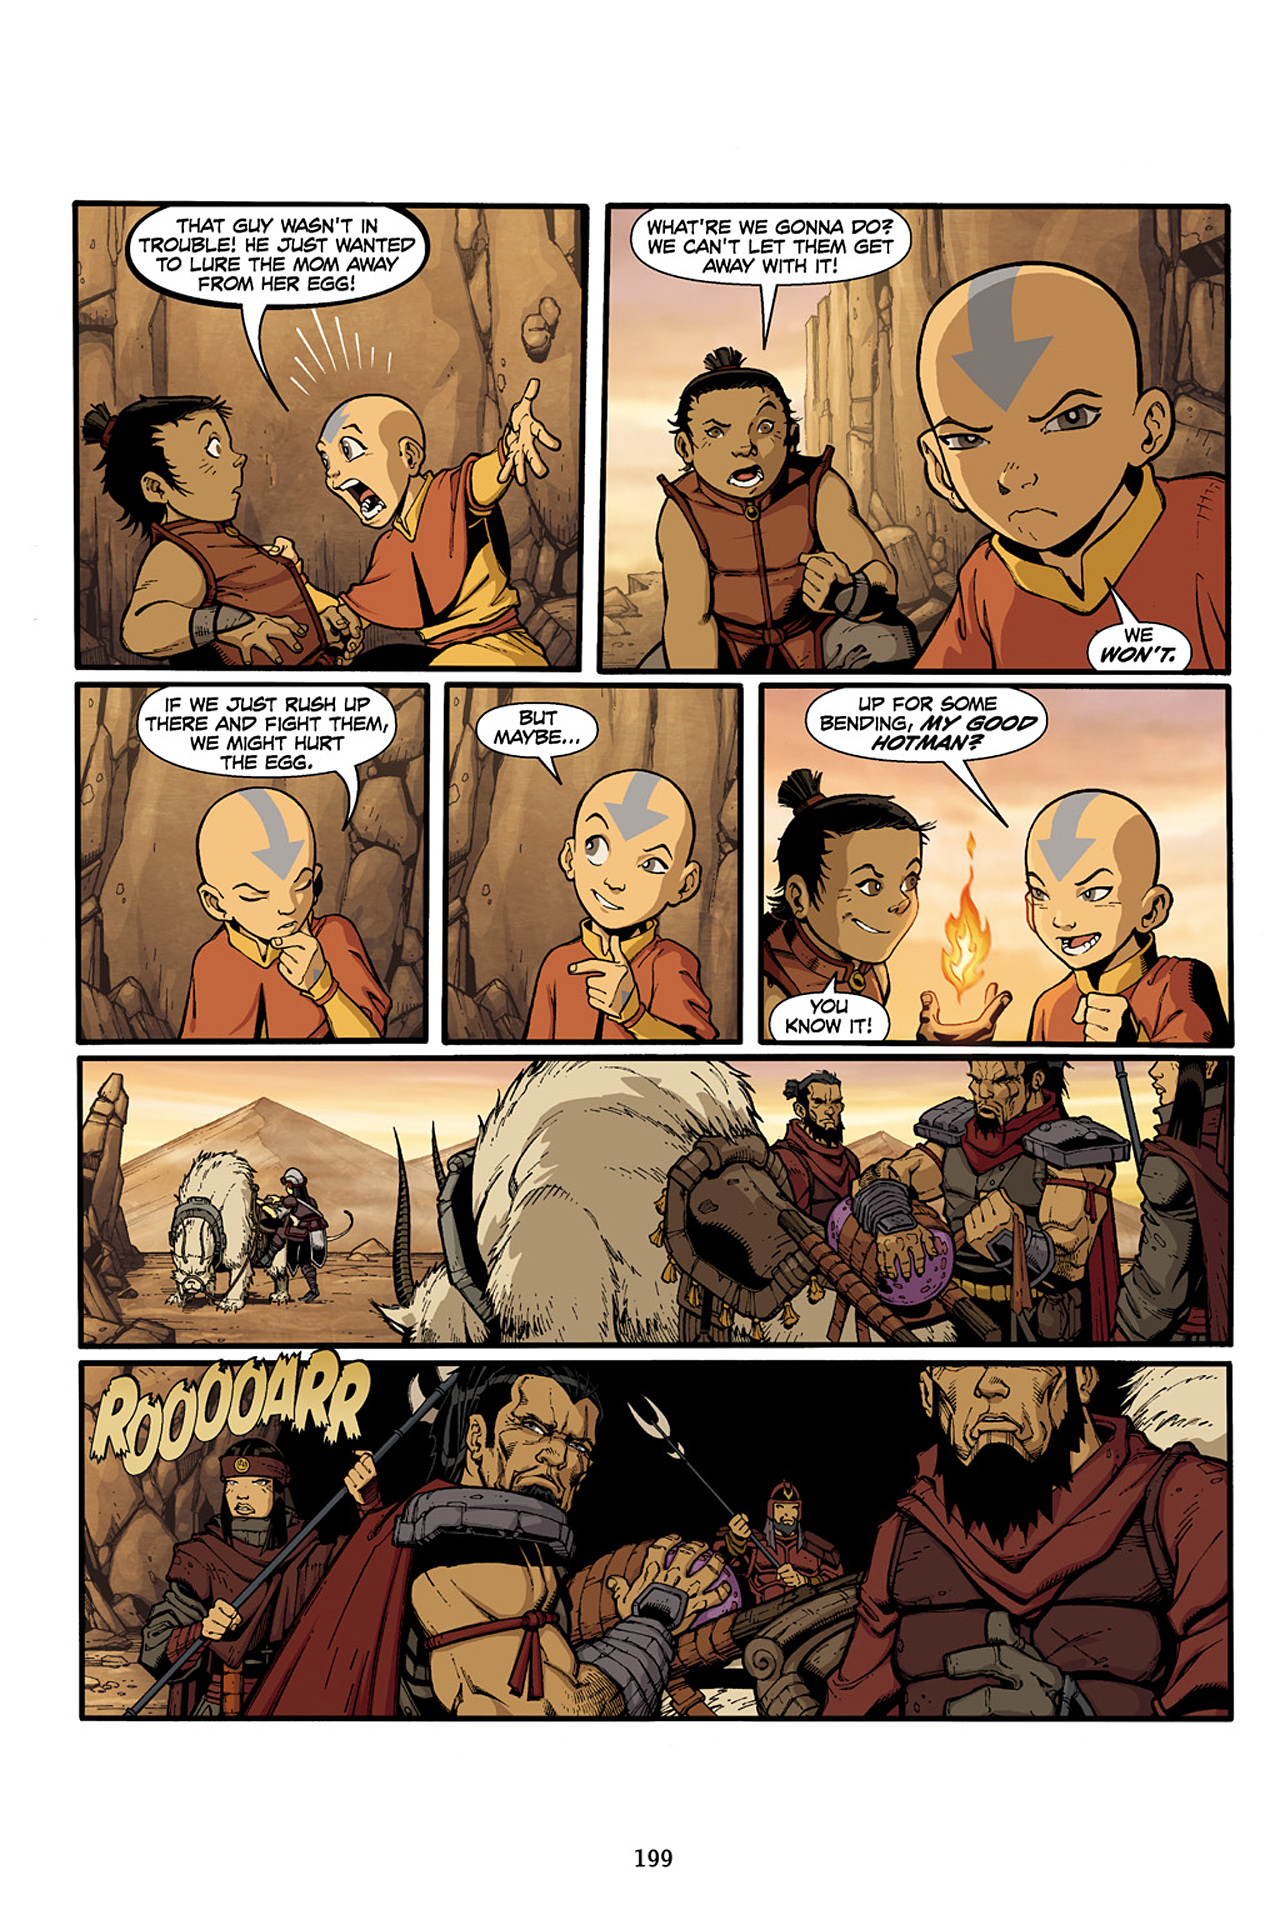 Nickelodeon Avatar: The Last Airbender - The Lost Adventures chap full pic 200